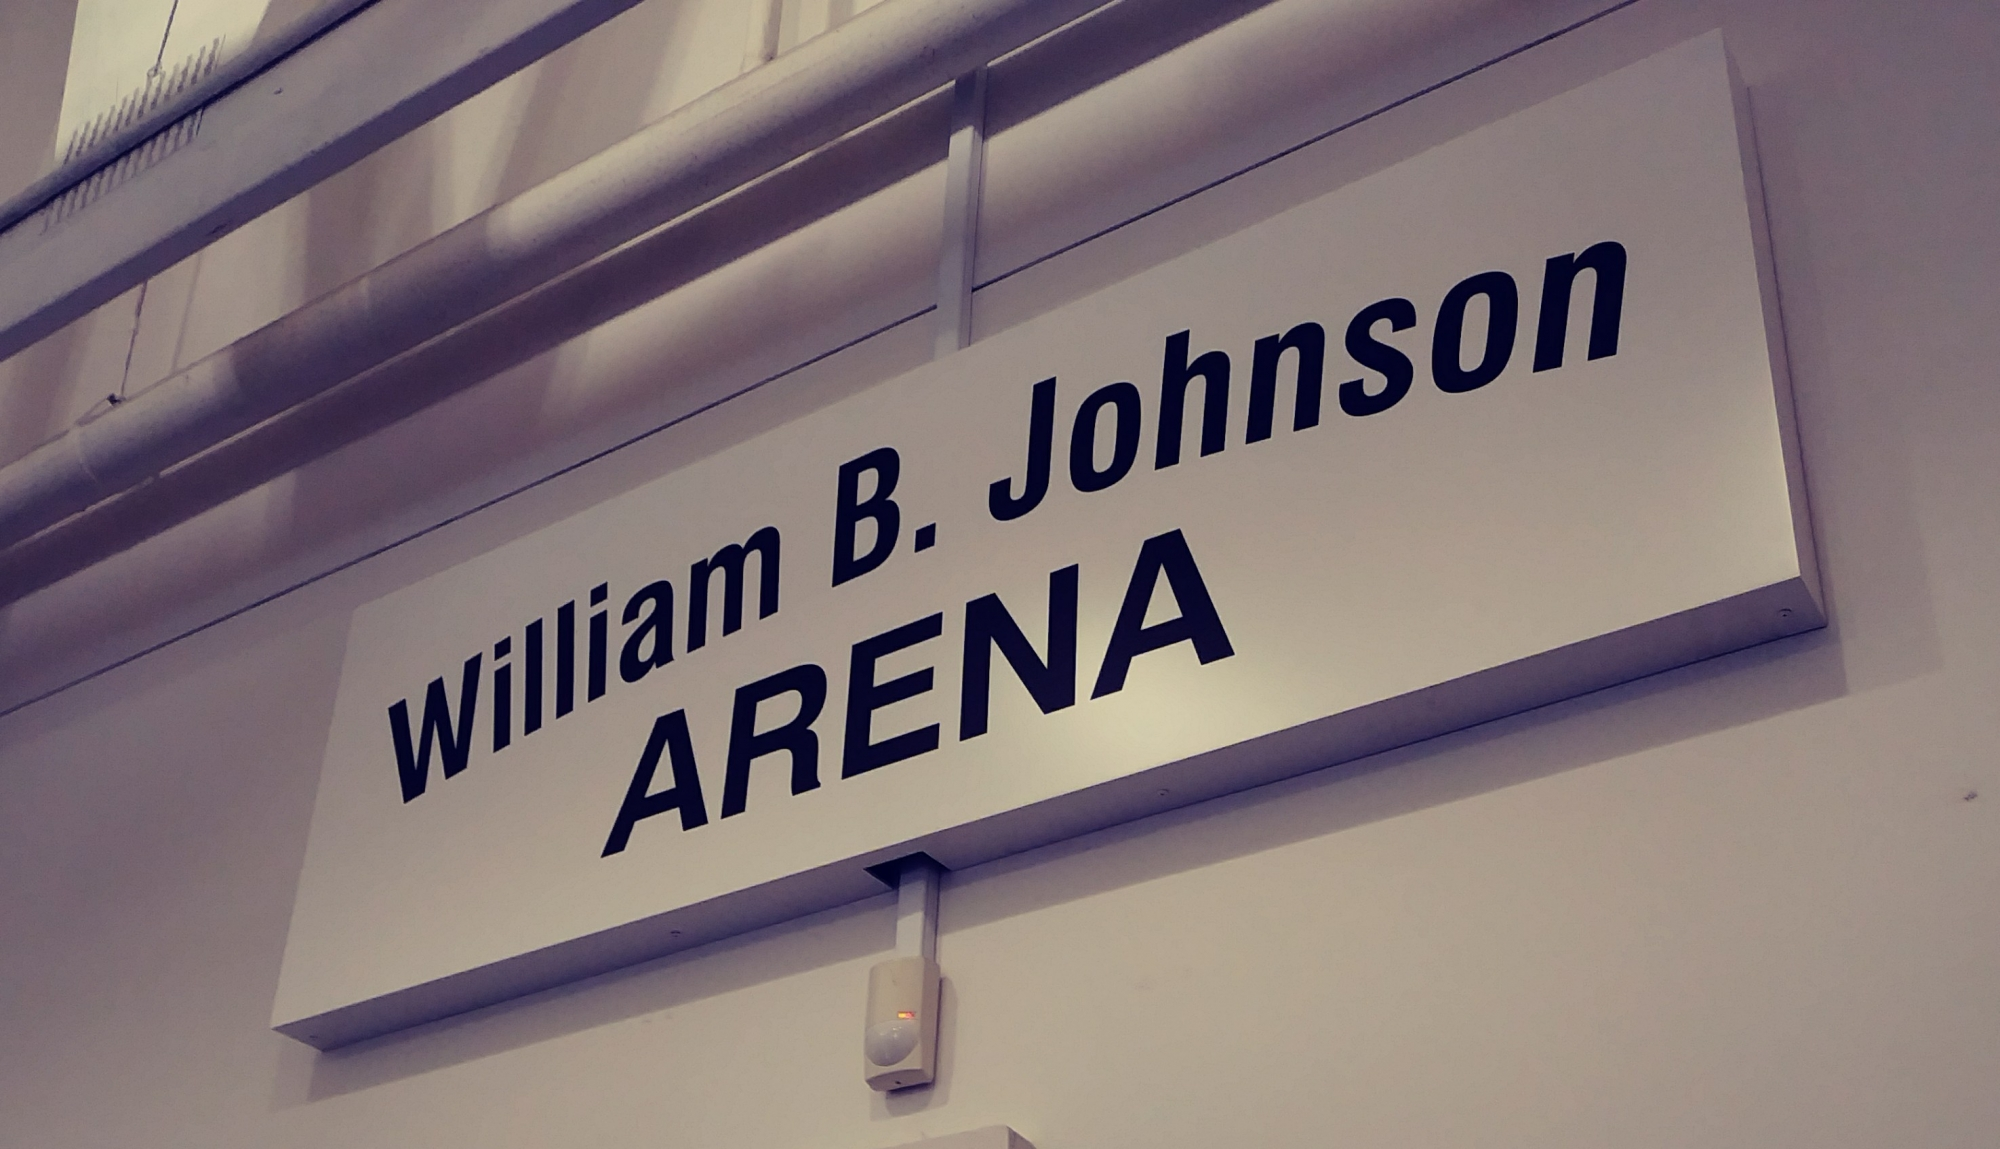 The William B. Johnson Arena was dedicated at the May 24 memorial.